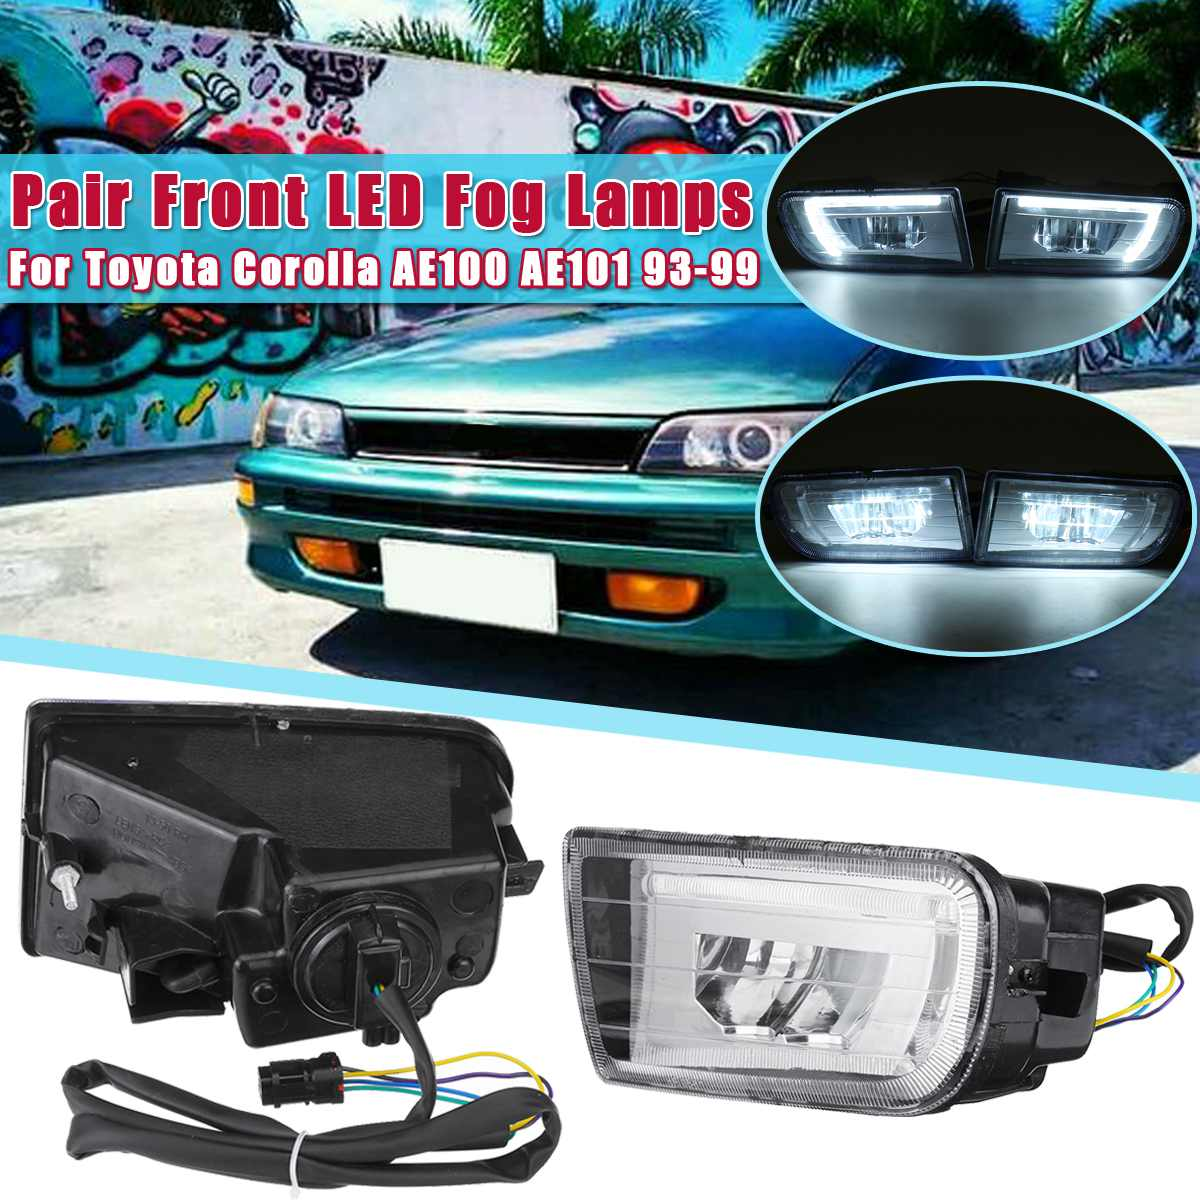 2PCS Fog Lamp Assembly Super Bright Fog Light For <font><b>toyota</b></font> <font><b>Corolla</b></font> AE100 <font><b>AE101</b></font> 1993 1994 1995 1996 1997 1998 1999 Led Fog Lights image